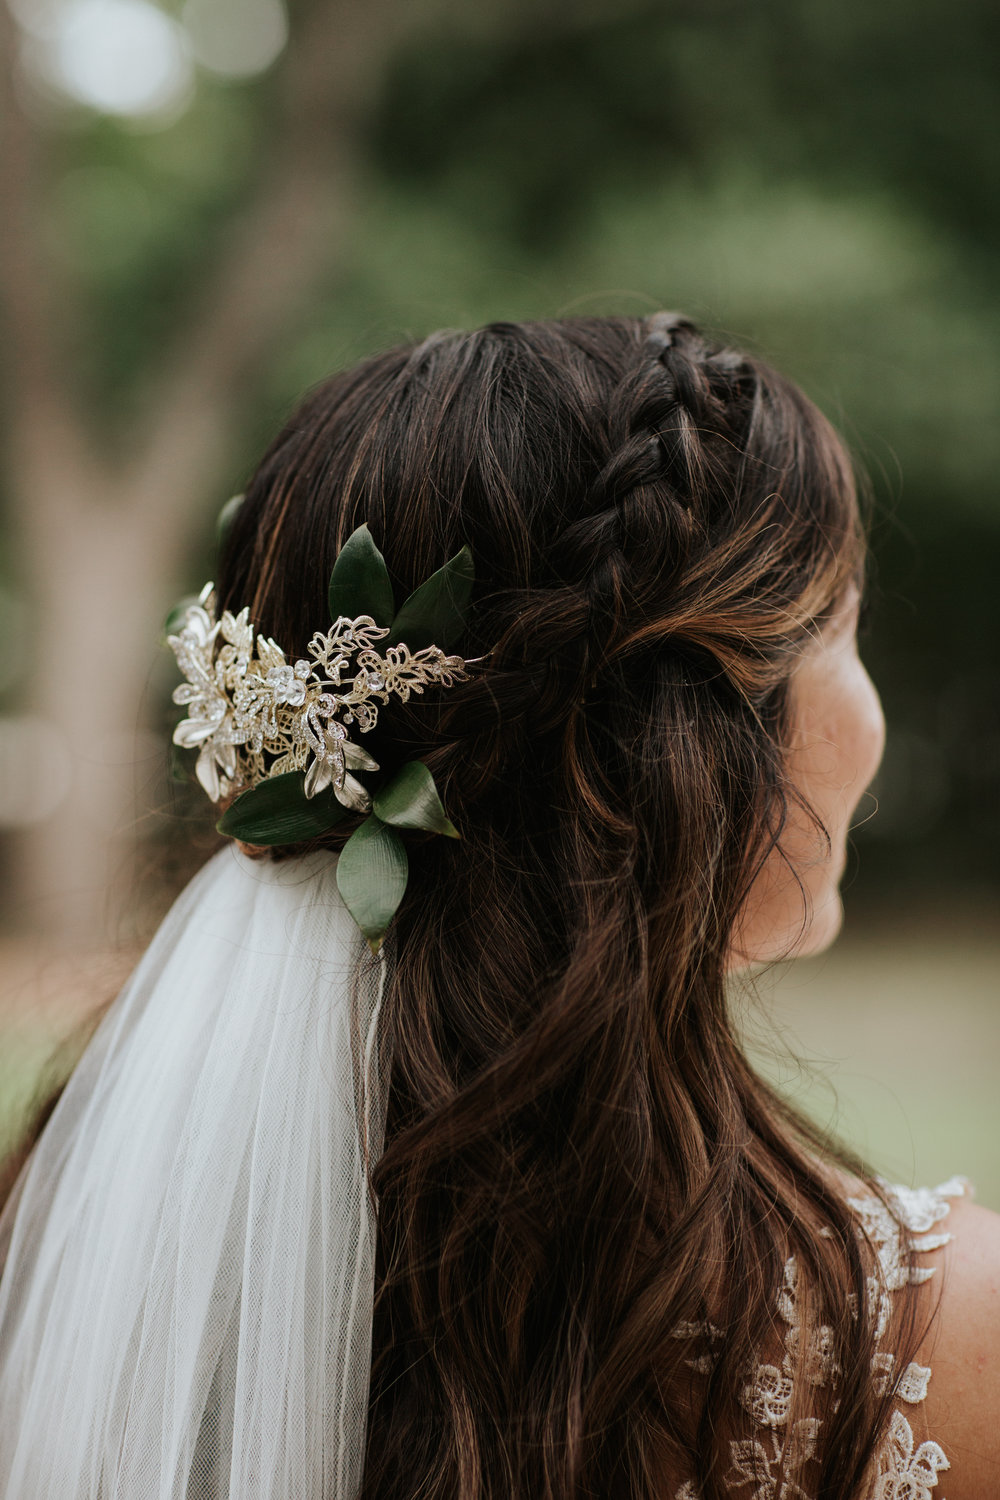 Bride's hair and makeup at her Austin, Texas wedding